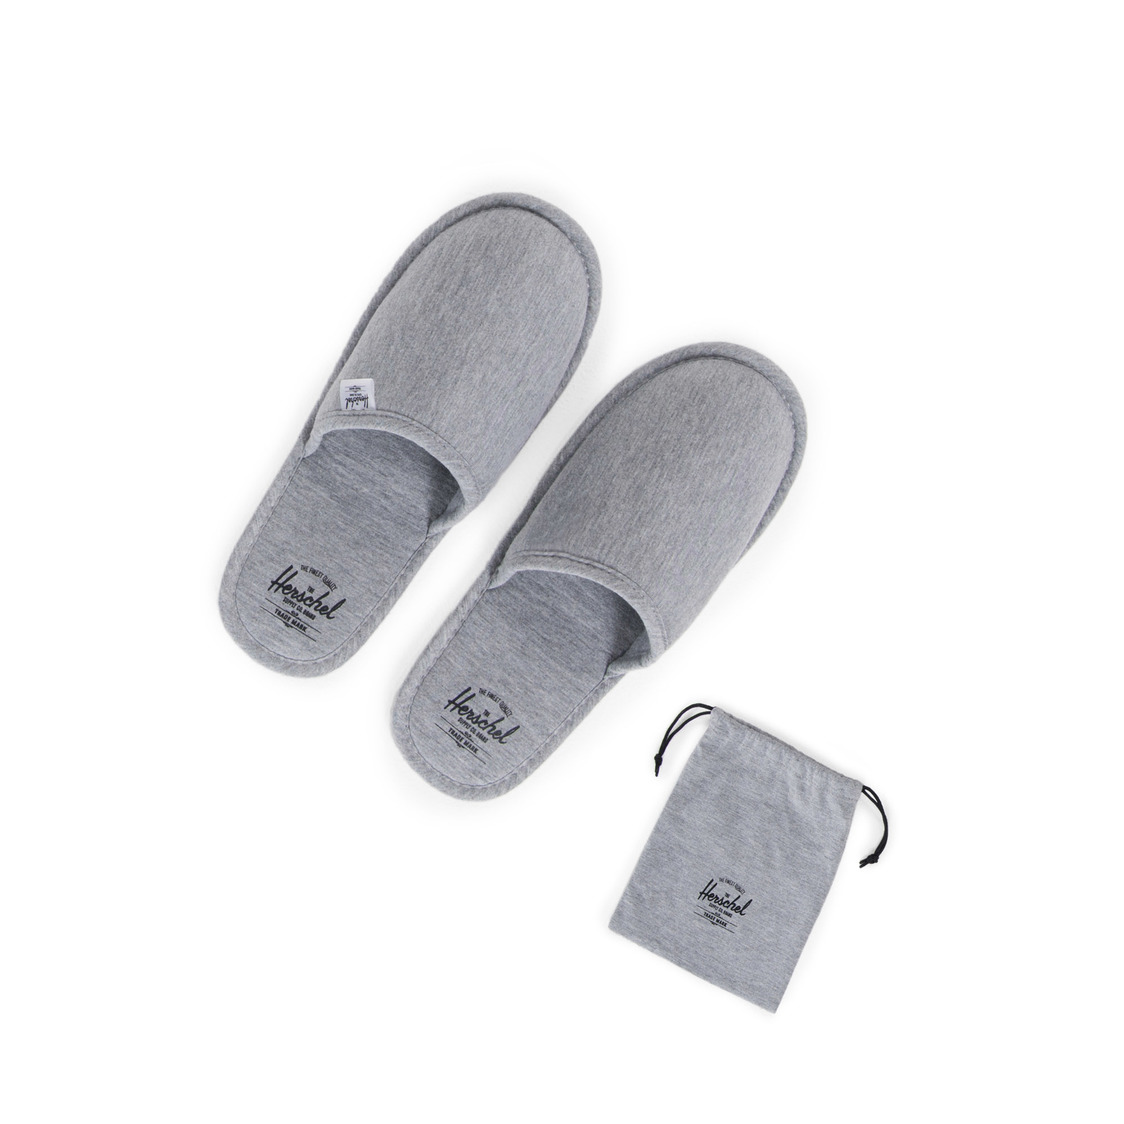 Slippers SM Heathered Grey 10545-02256-SM